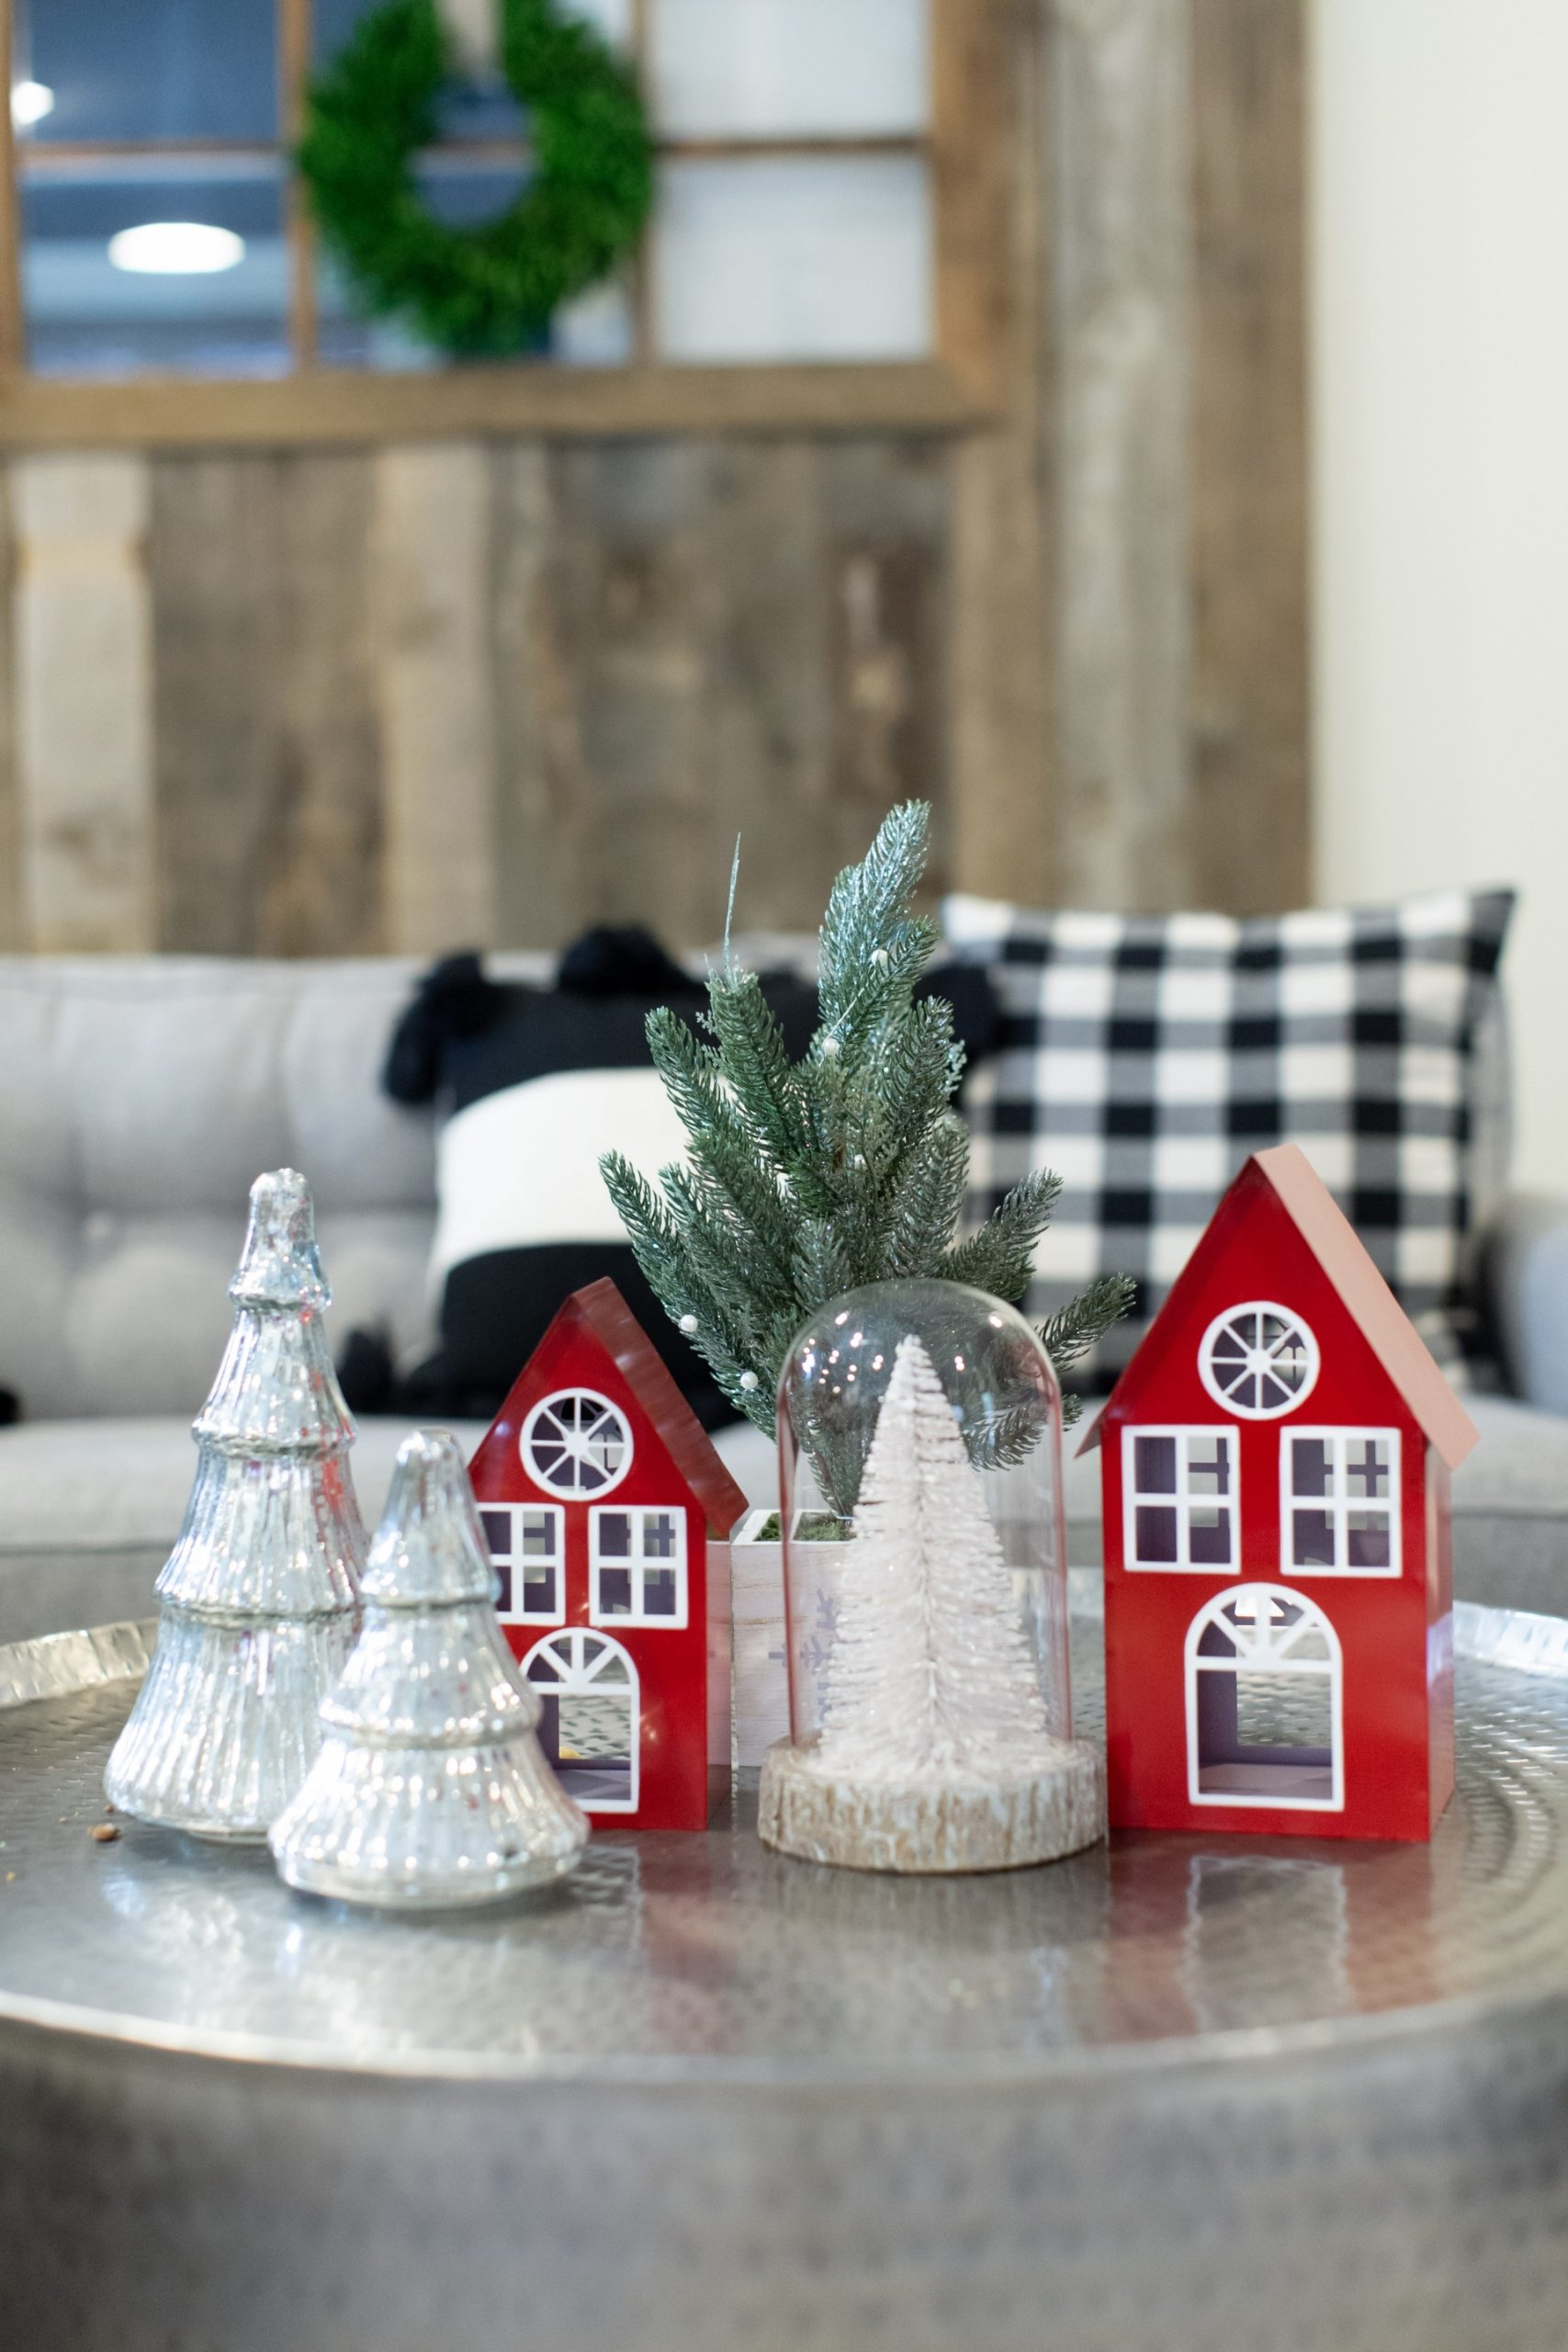 The Best Amazon Christmas Decorations For Your Home + Other Favorites From Target, Walmart, & Etsy by Life + Style Blogger, Heather Brown // My Life Well Loved